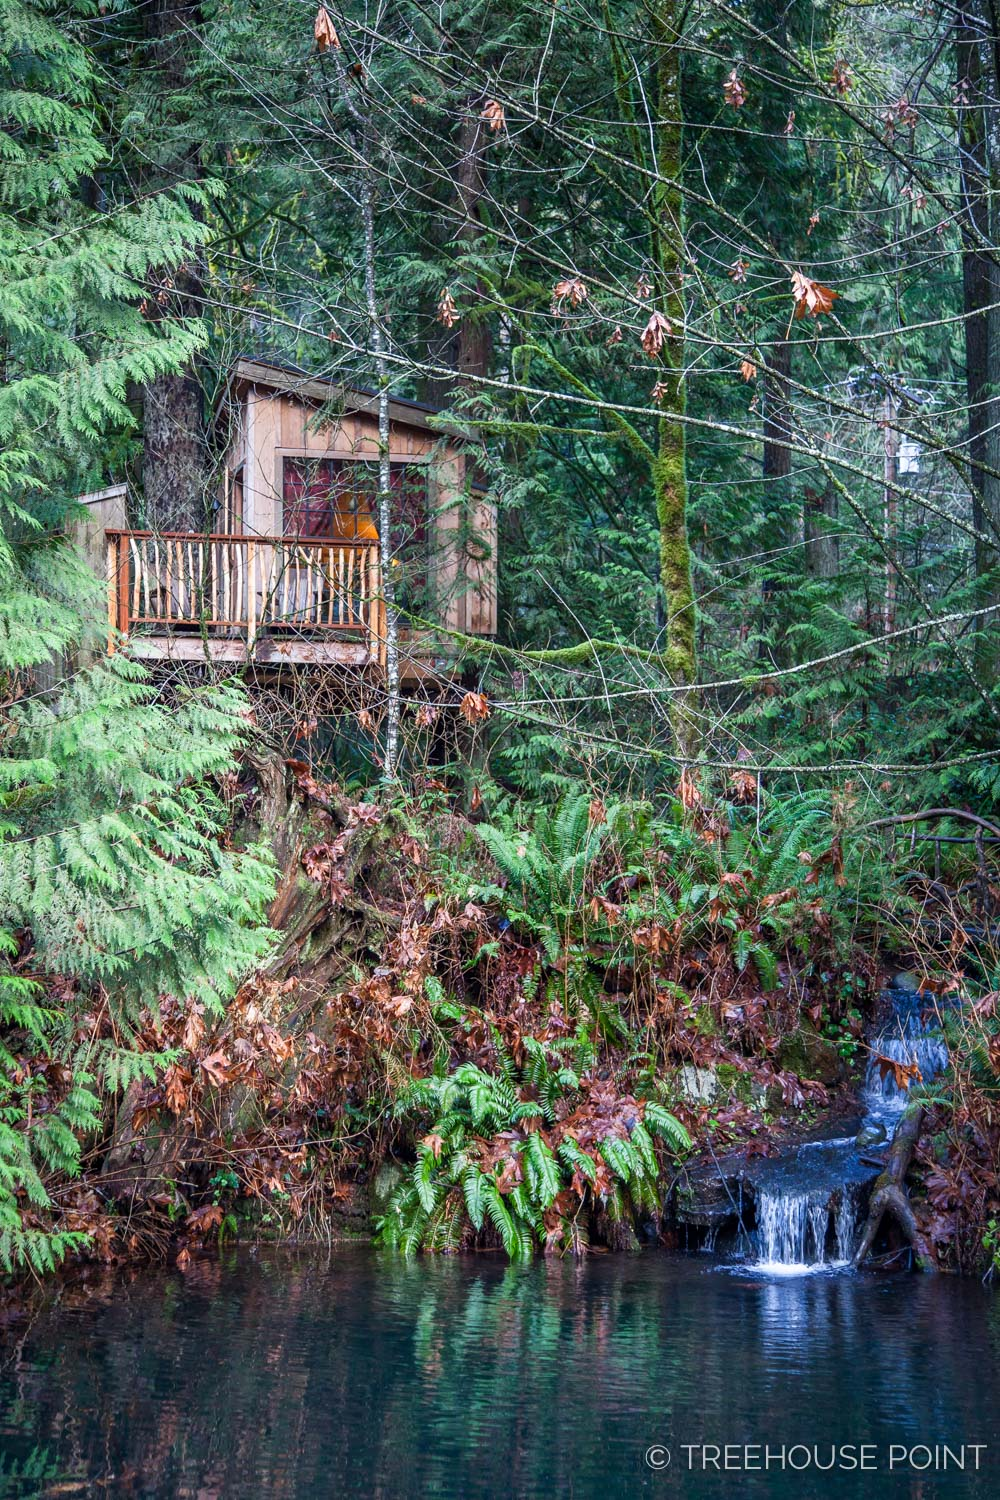 Nest_TreeHouse_Point_2018-1.jpg